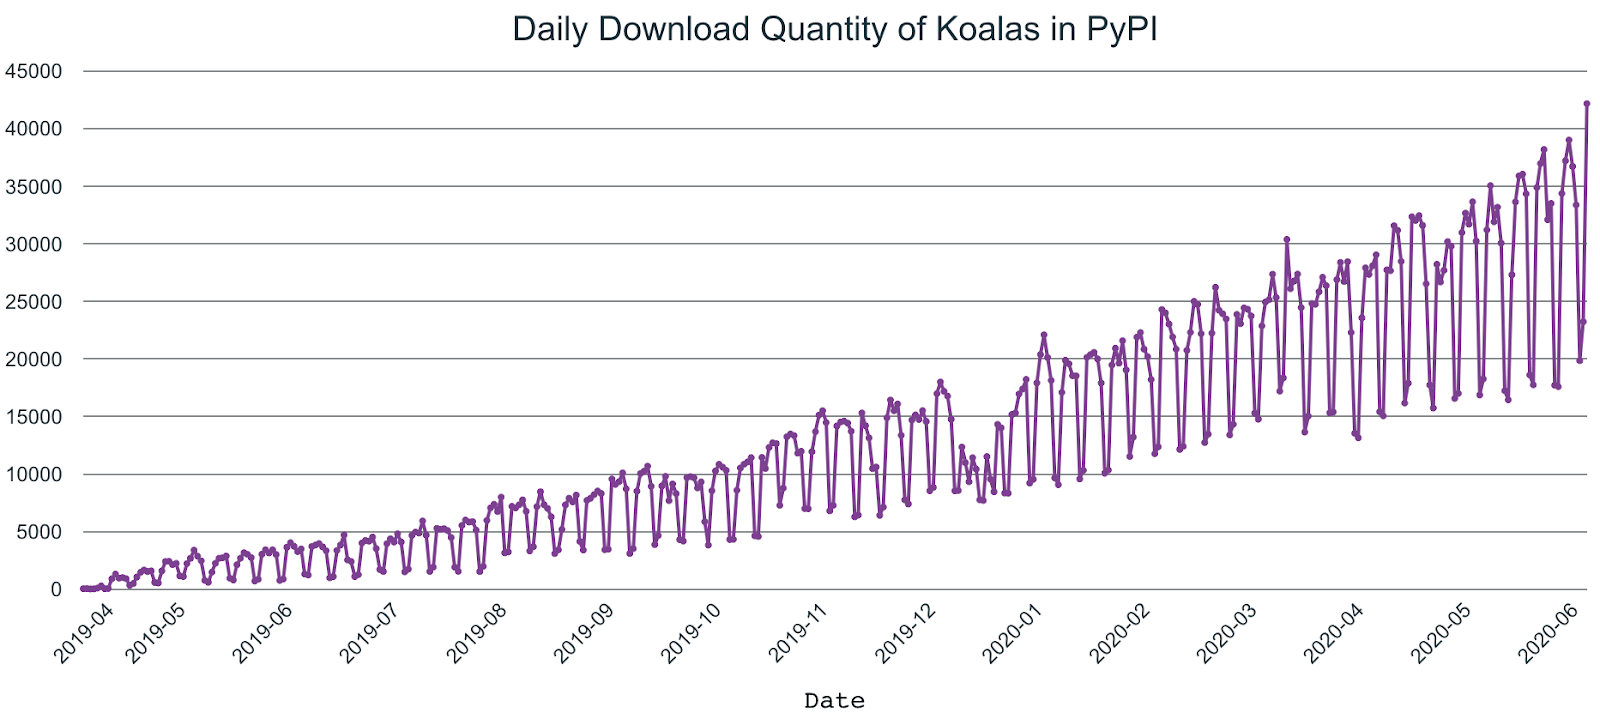 Koalas' use and adoption have grown rapidly since its April 2019 release, with it now comprising 20% of all PySpark downloads.